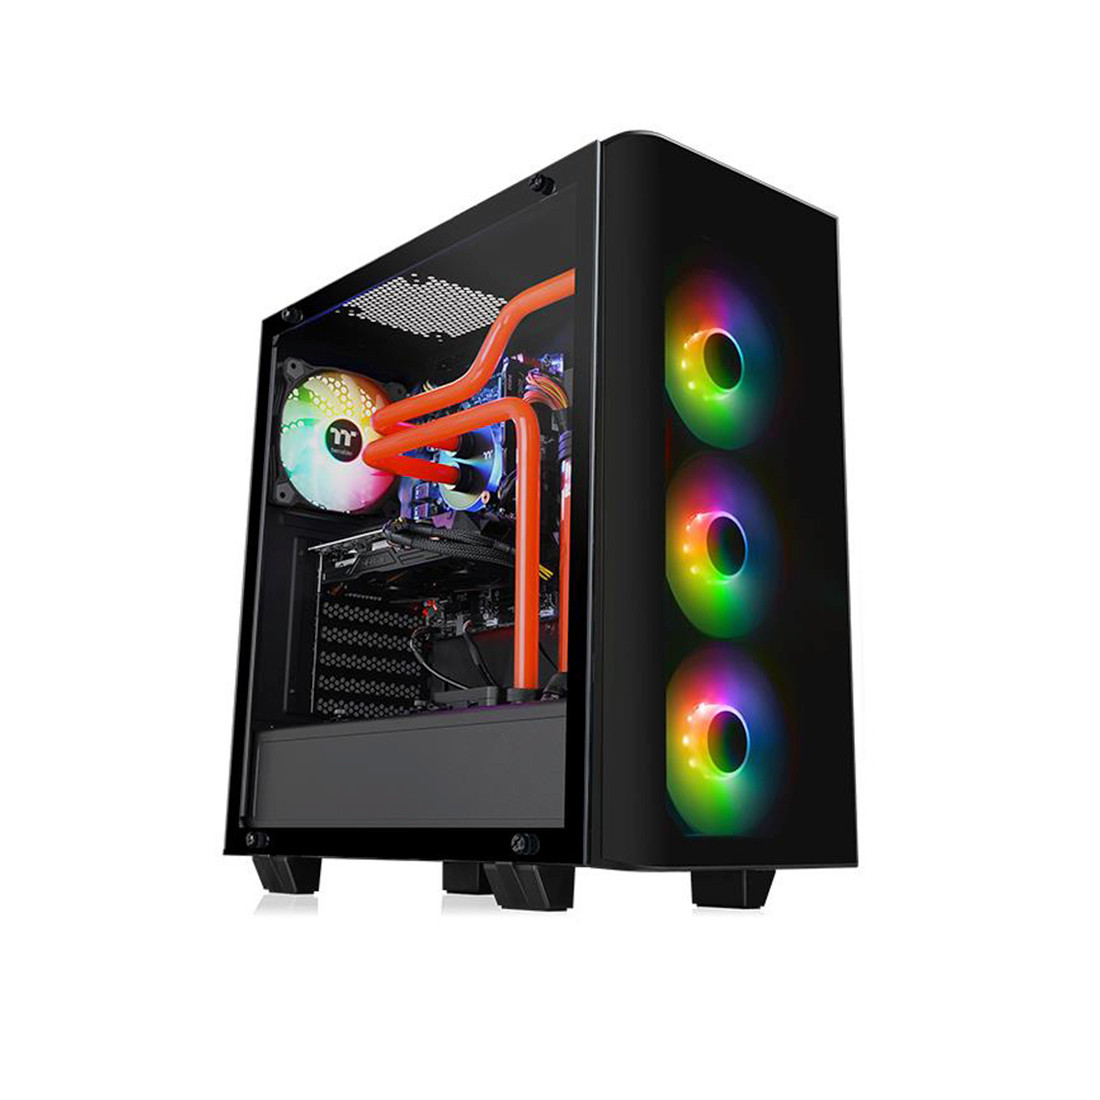 Компьютерный корпус Thermaltake View 21 TG RGB Plus без Б/П